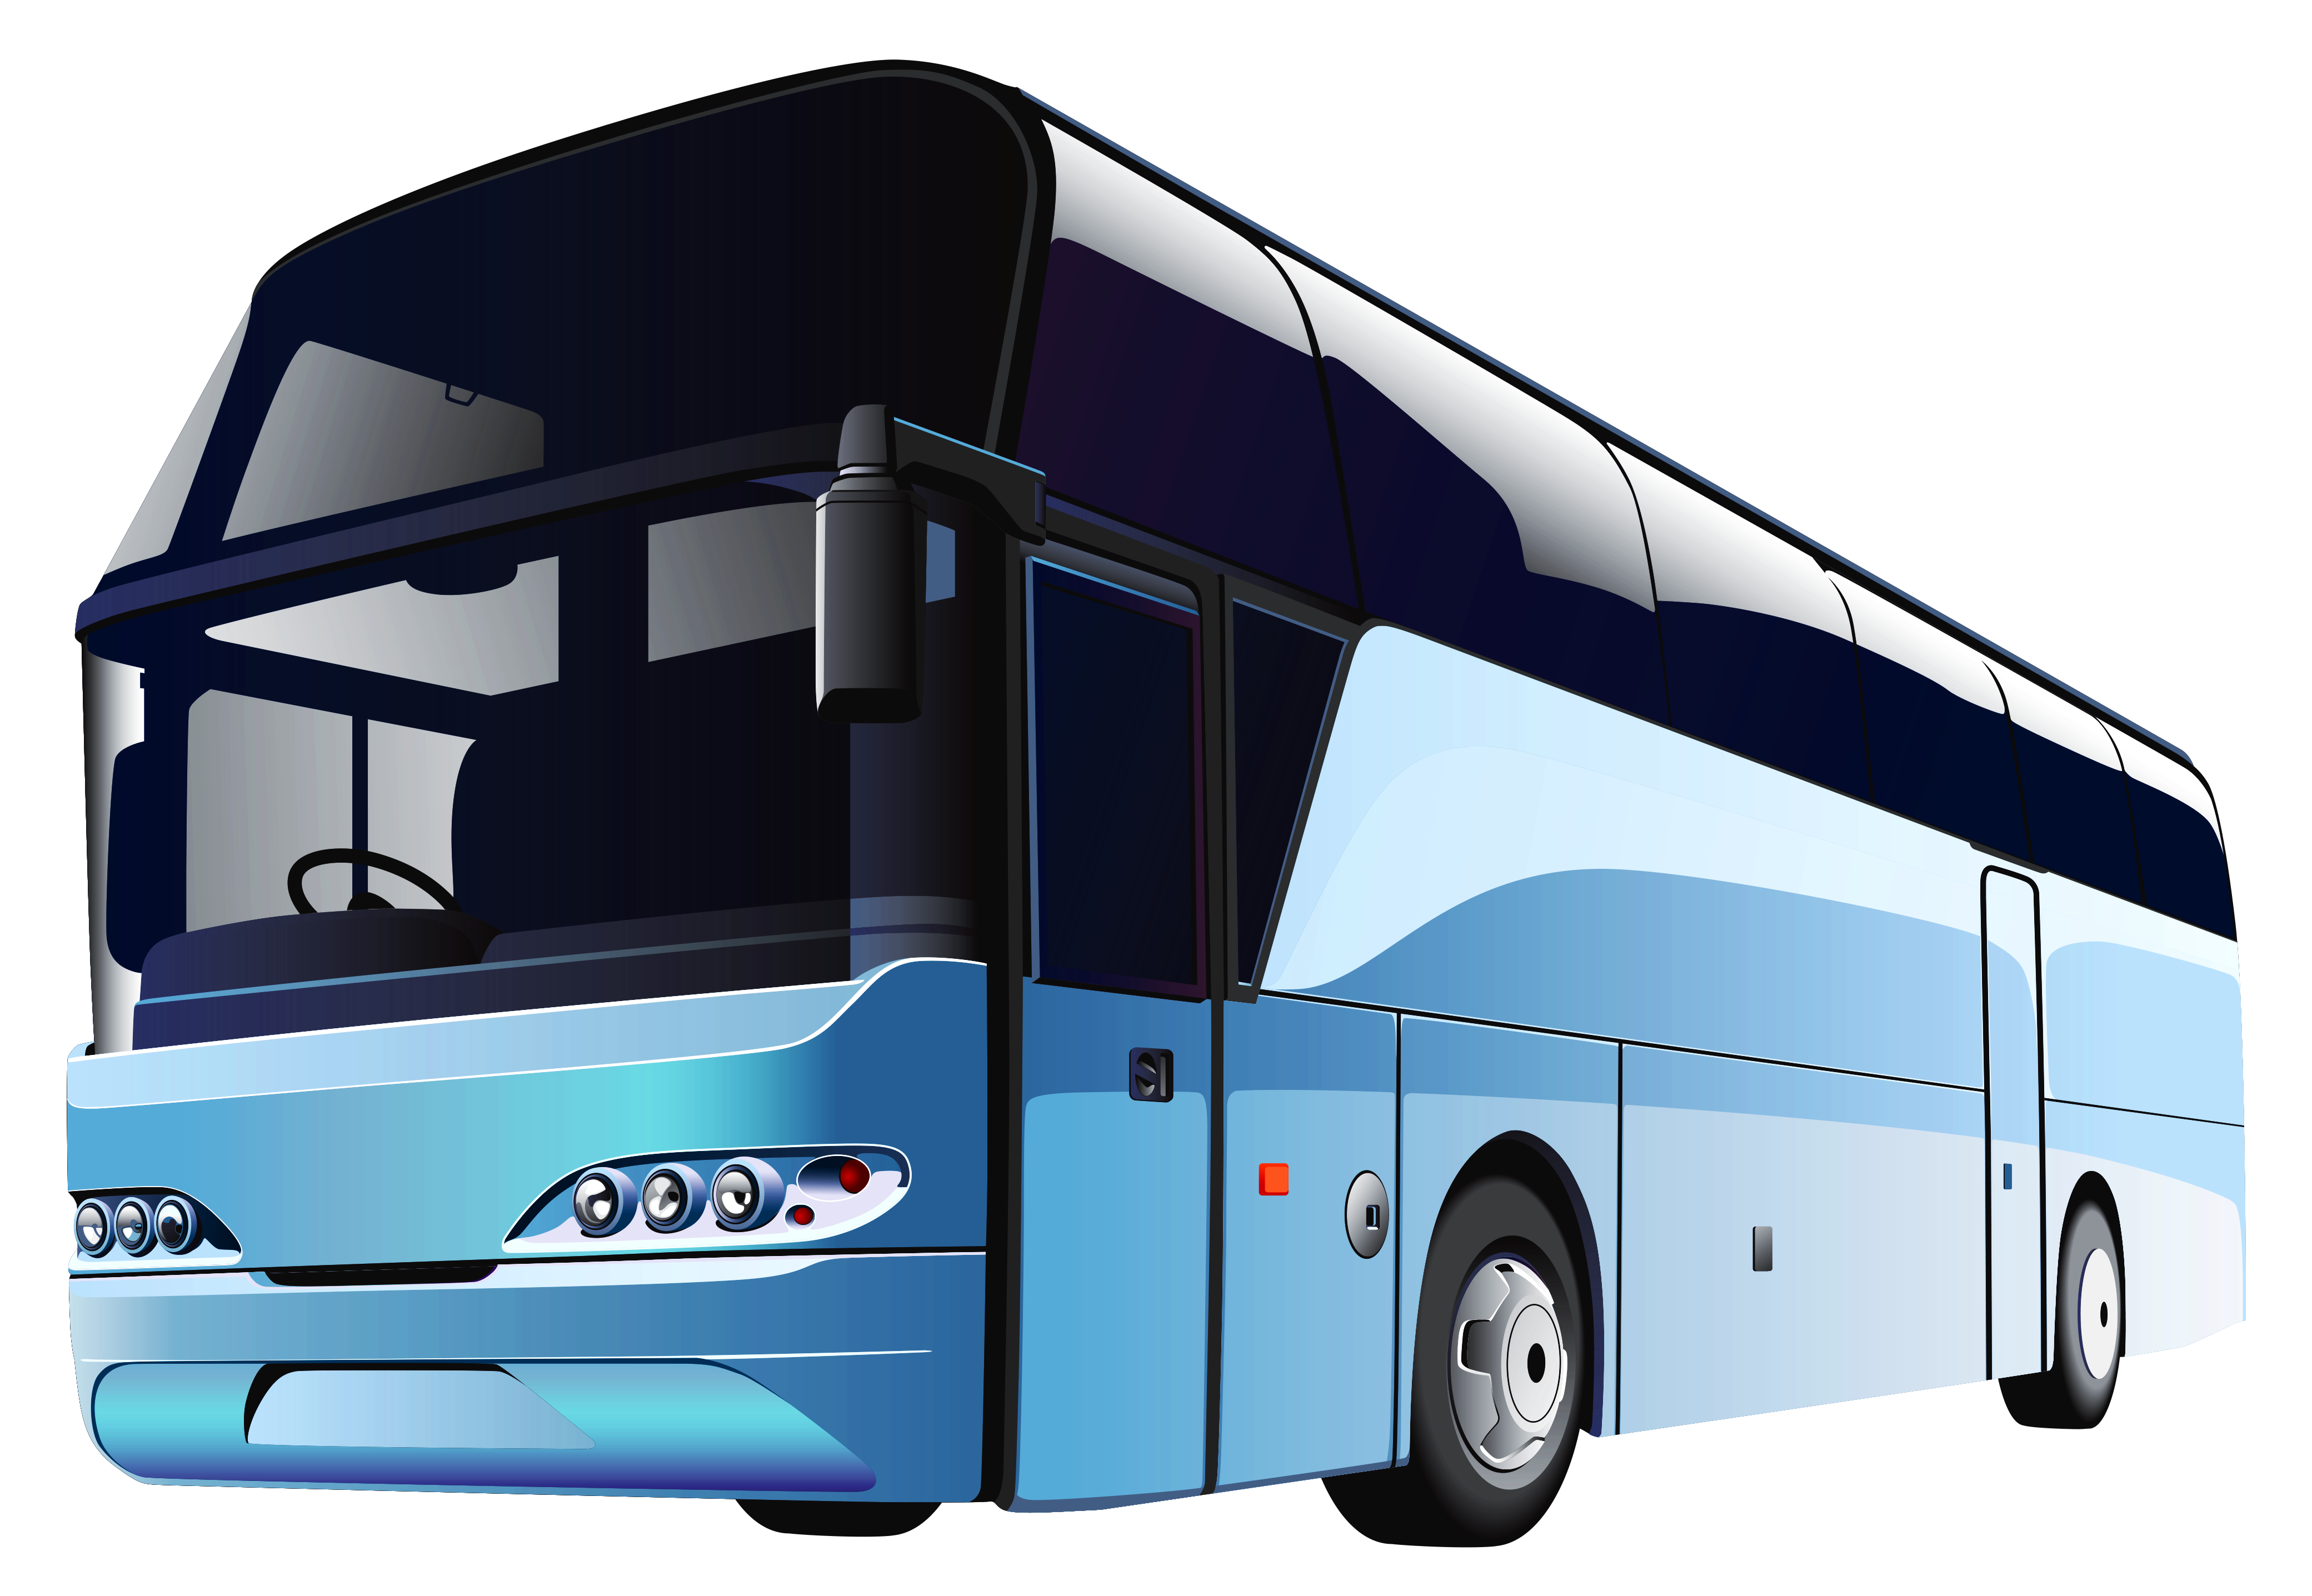 Bus clipart transparent background. Blue png best web